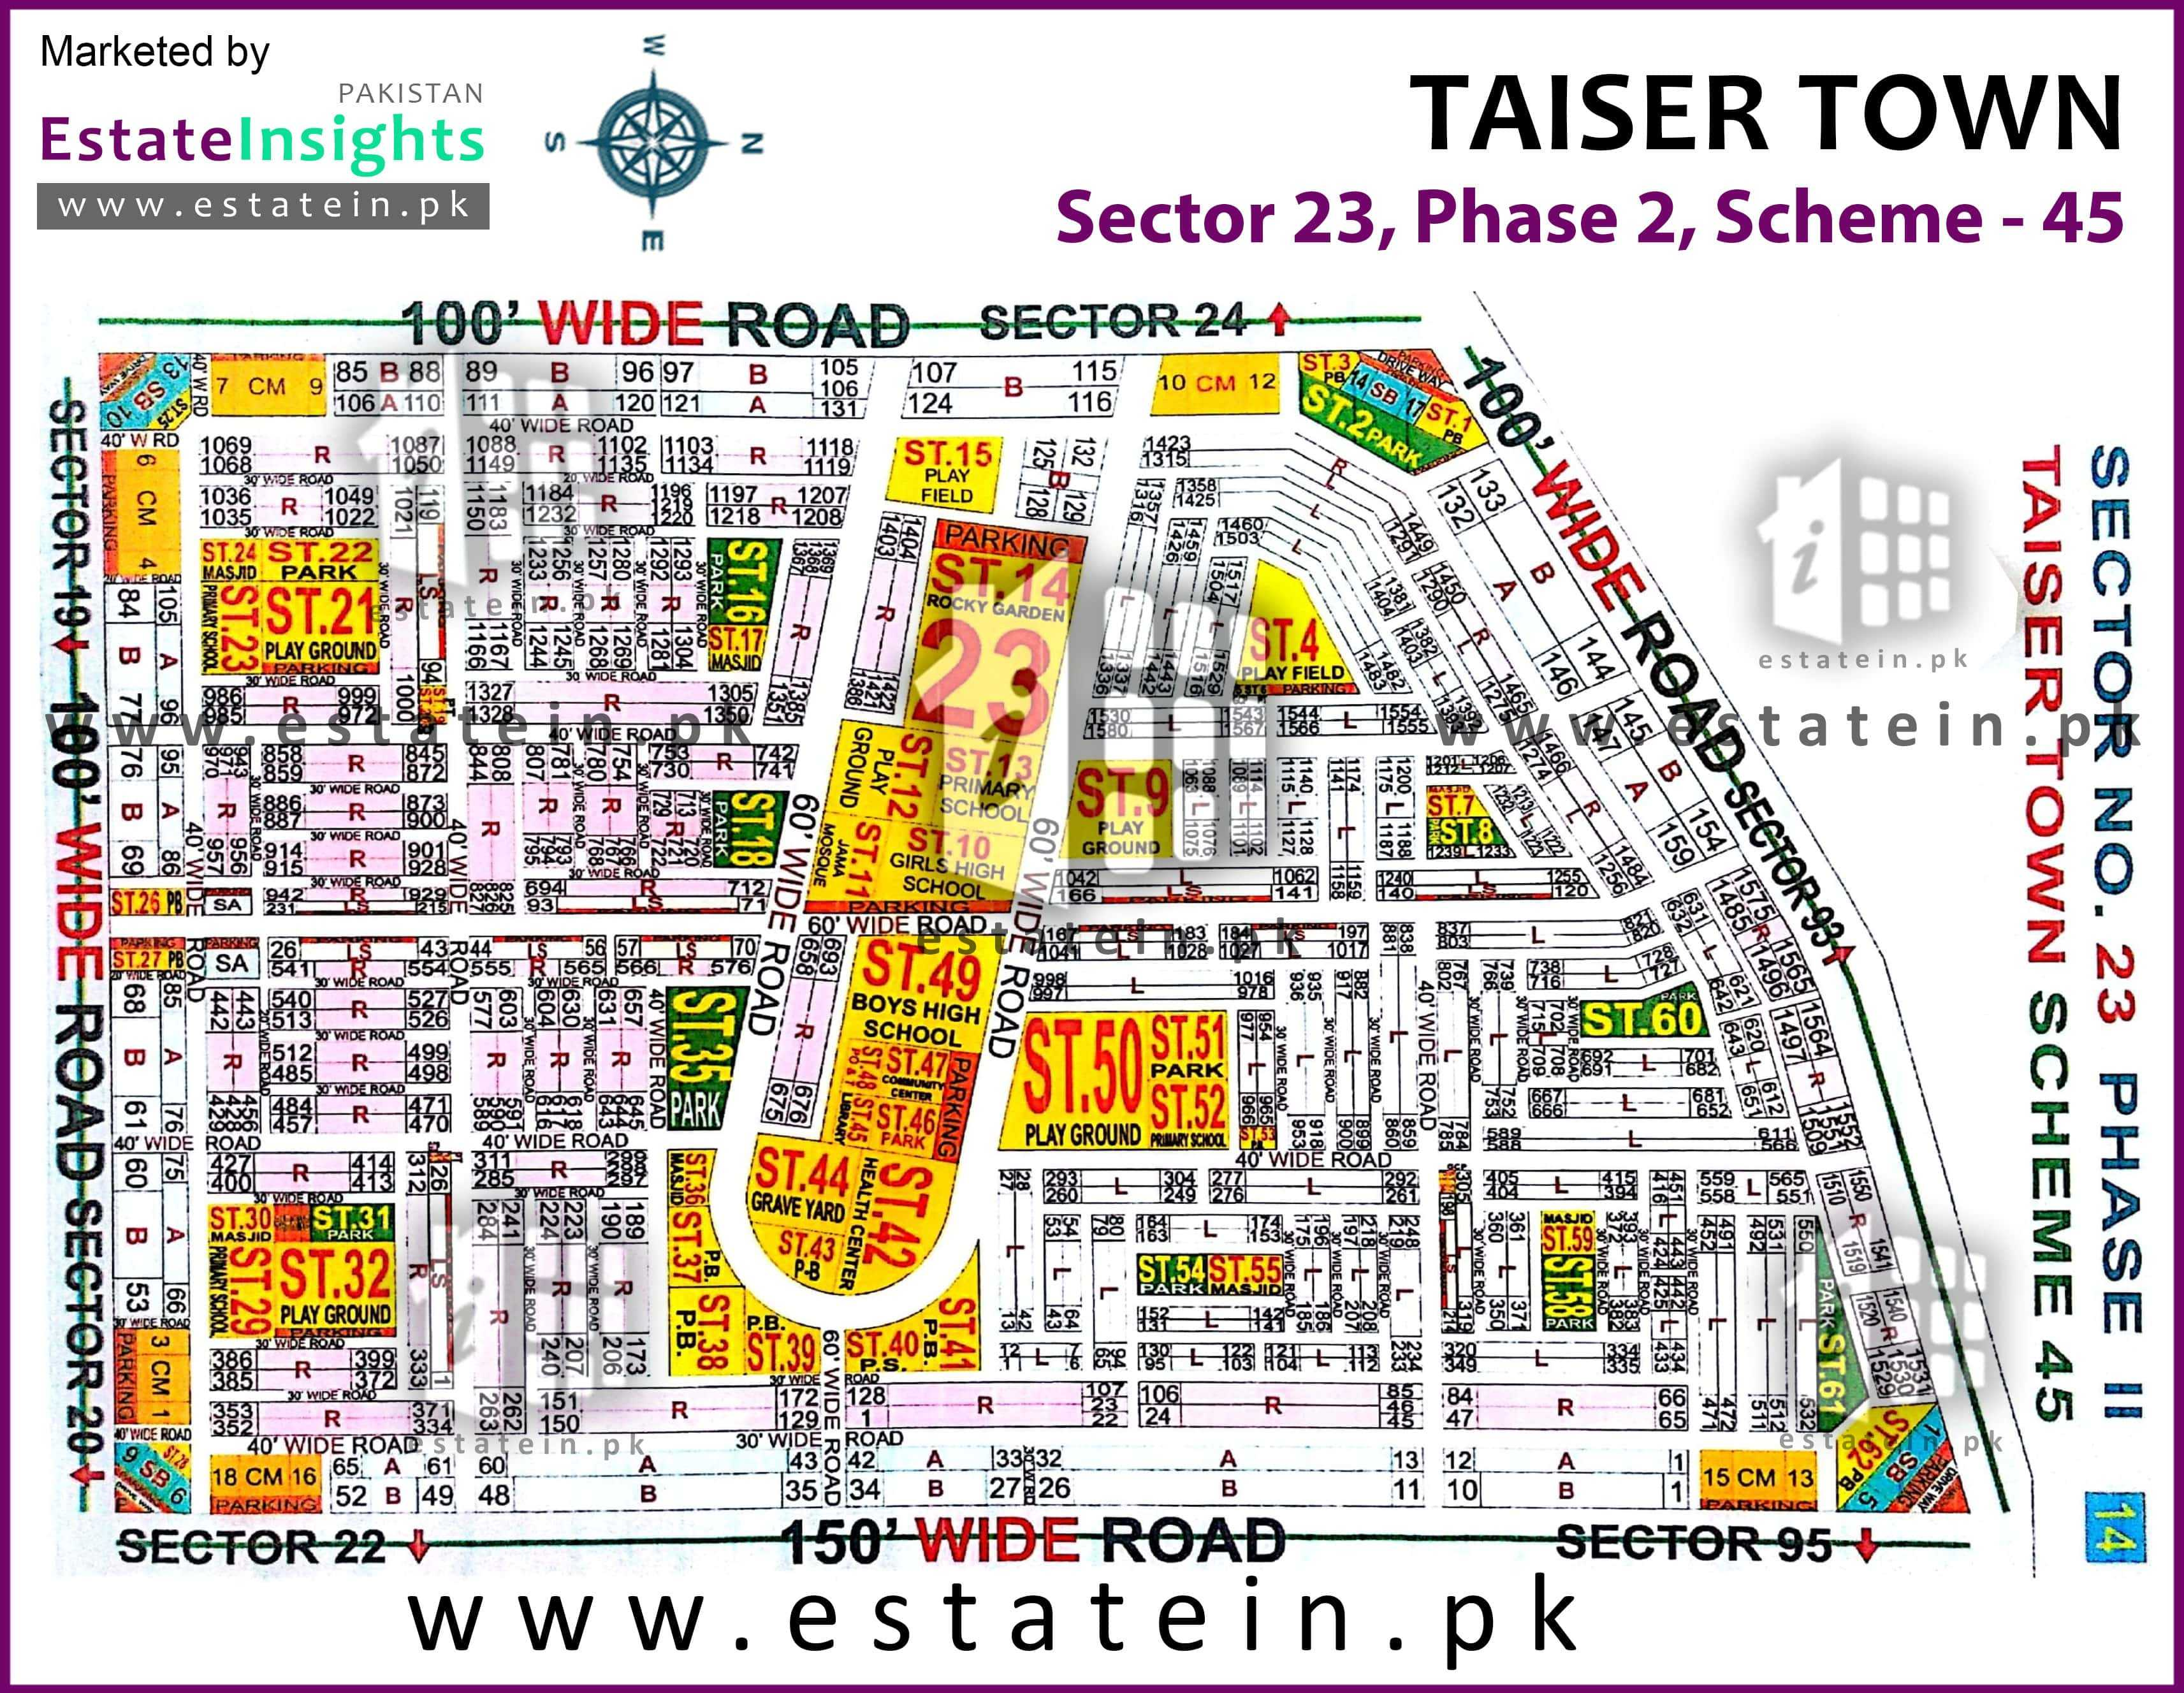 Site Plan of Sector 23 of Taiser Town Phase II